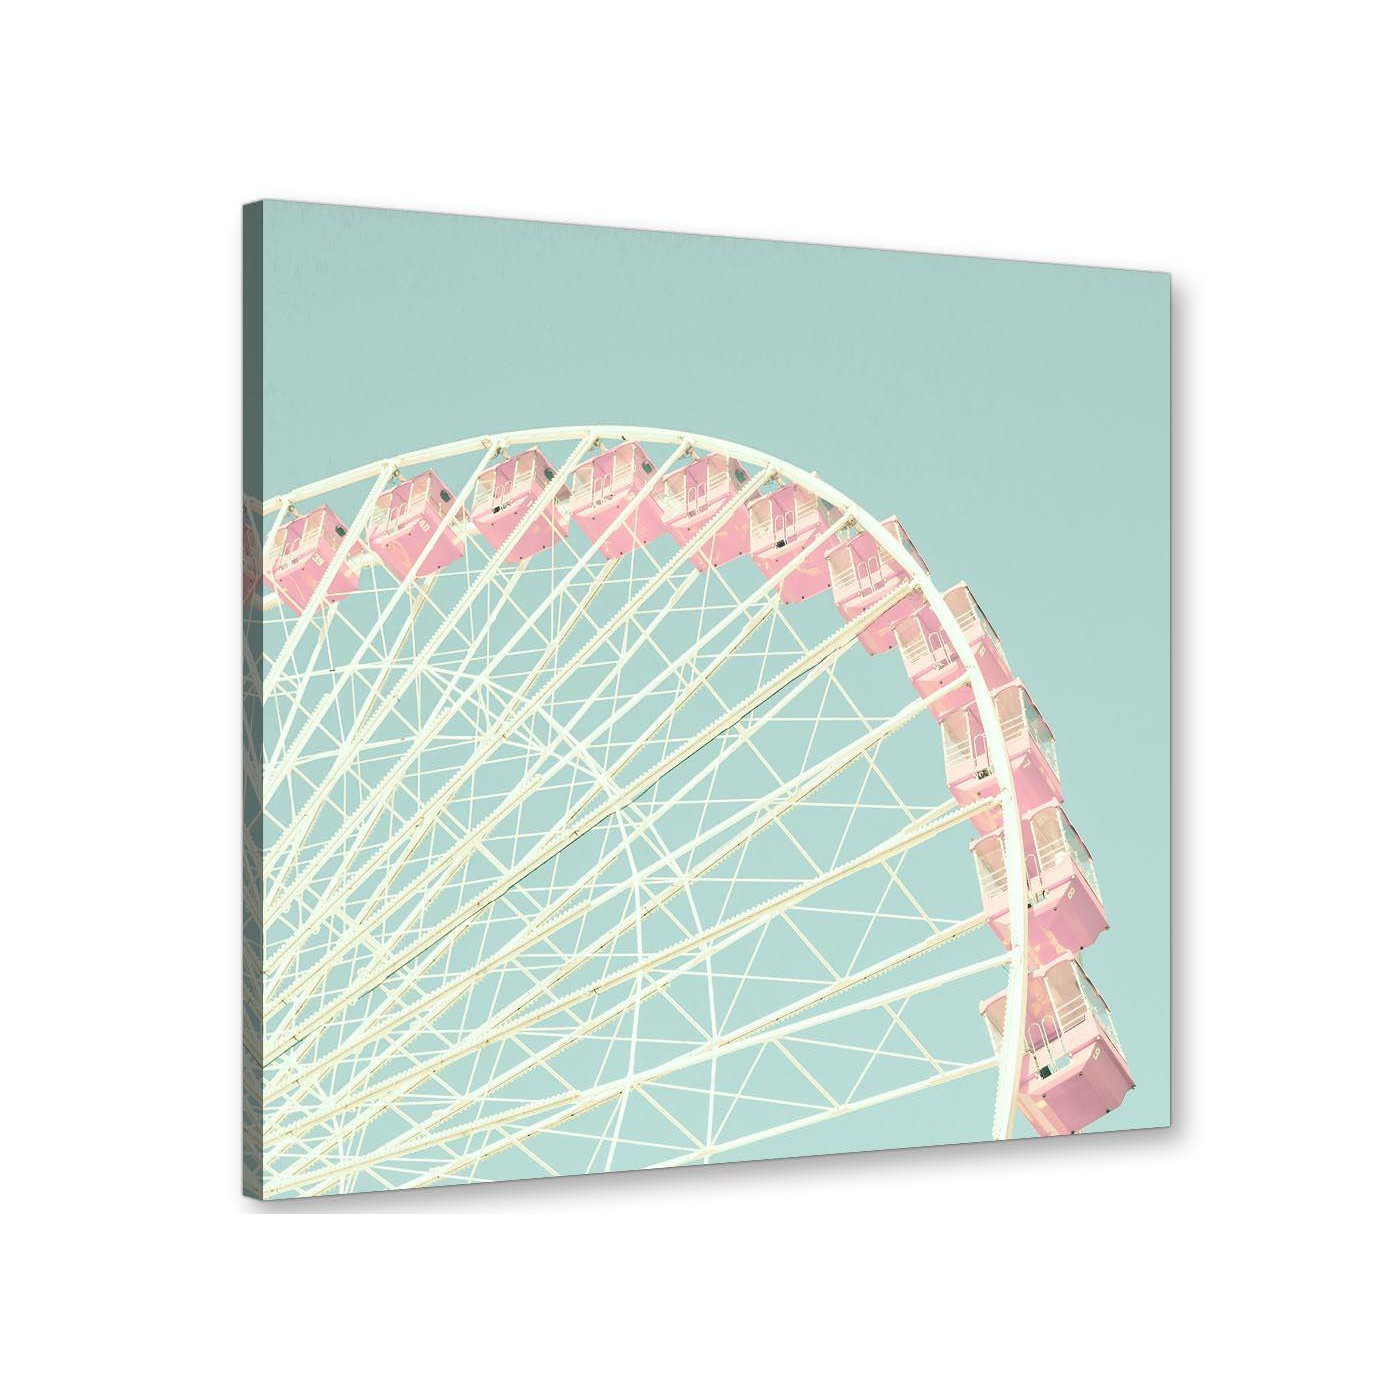 duck egg blue shabby. Display Gallery Item 3; Cheap Shabby Chic Duck Egg Blue Pink Ferris Wheel Lifestyle Canvas 49cm Square 1s282s For Your 4